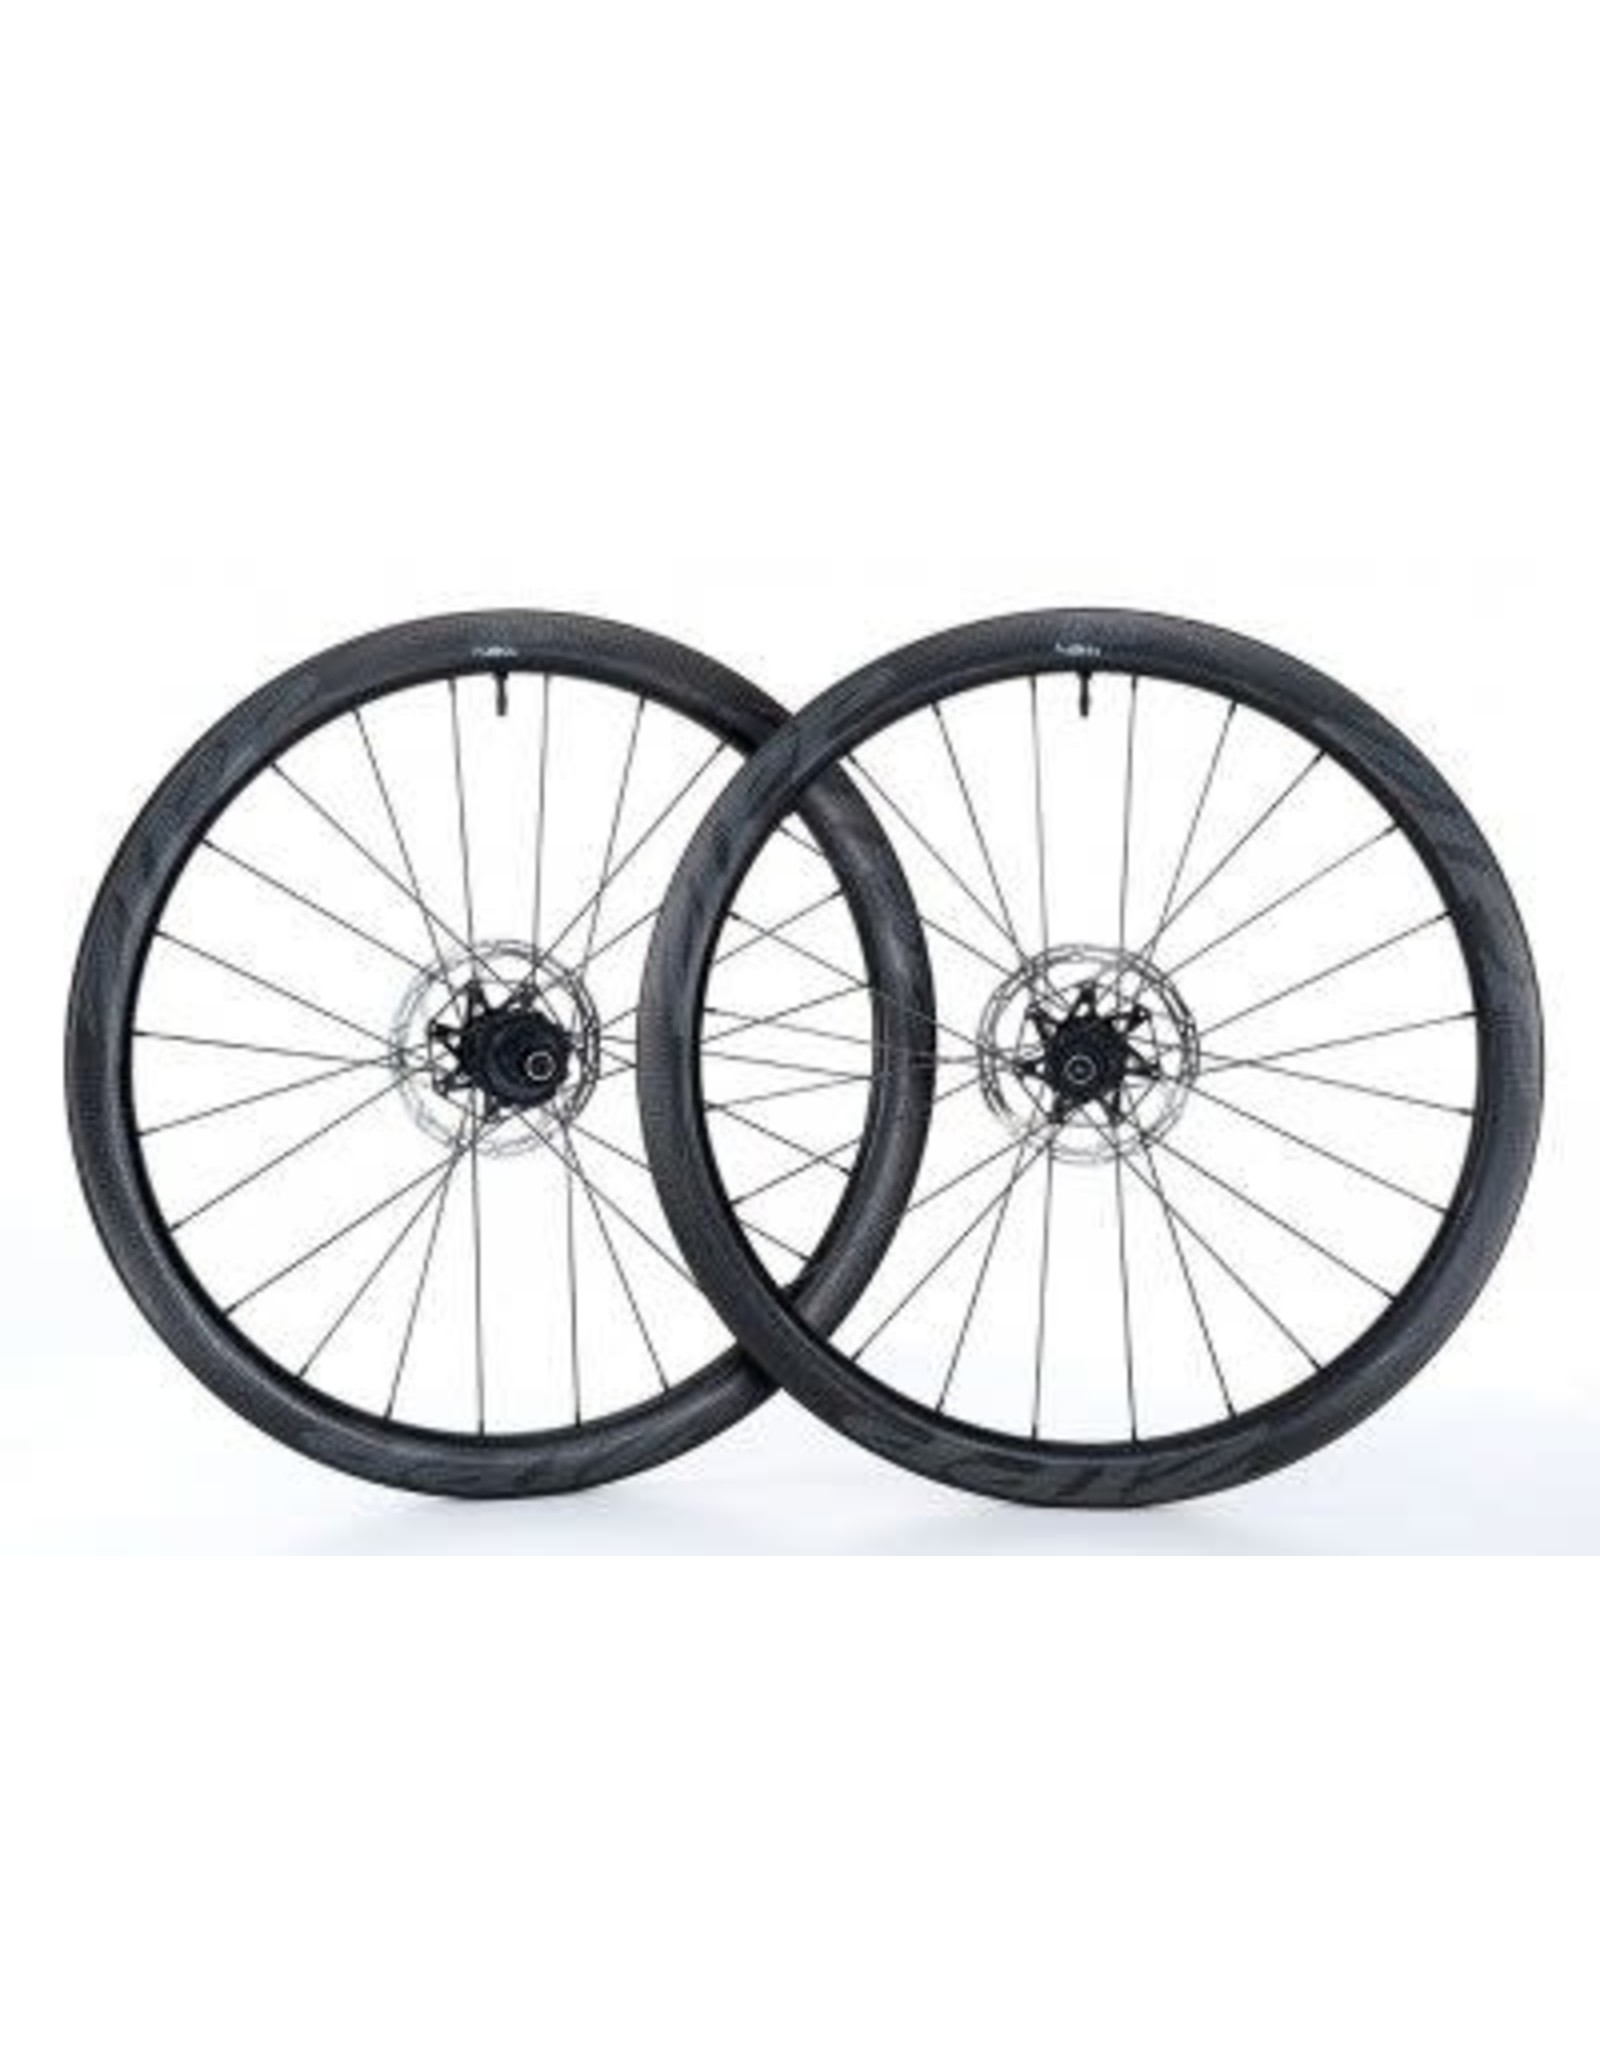 Zipp ZIPP, 303 NSW, Disc Wheelset, XD-R, CL